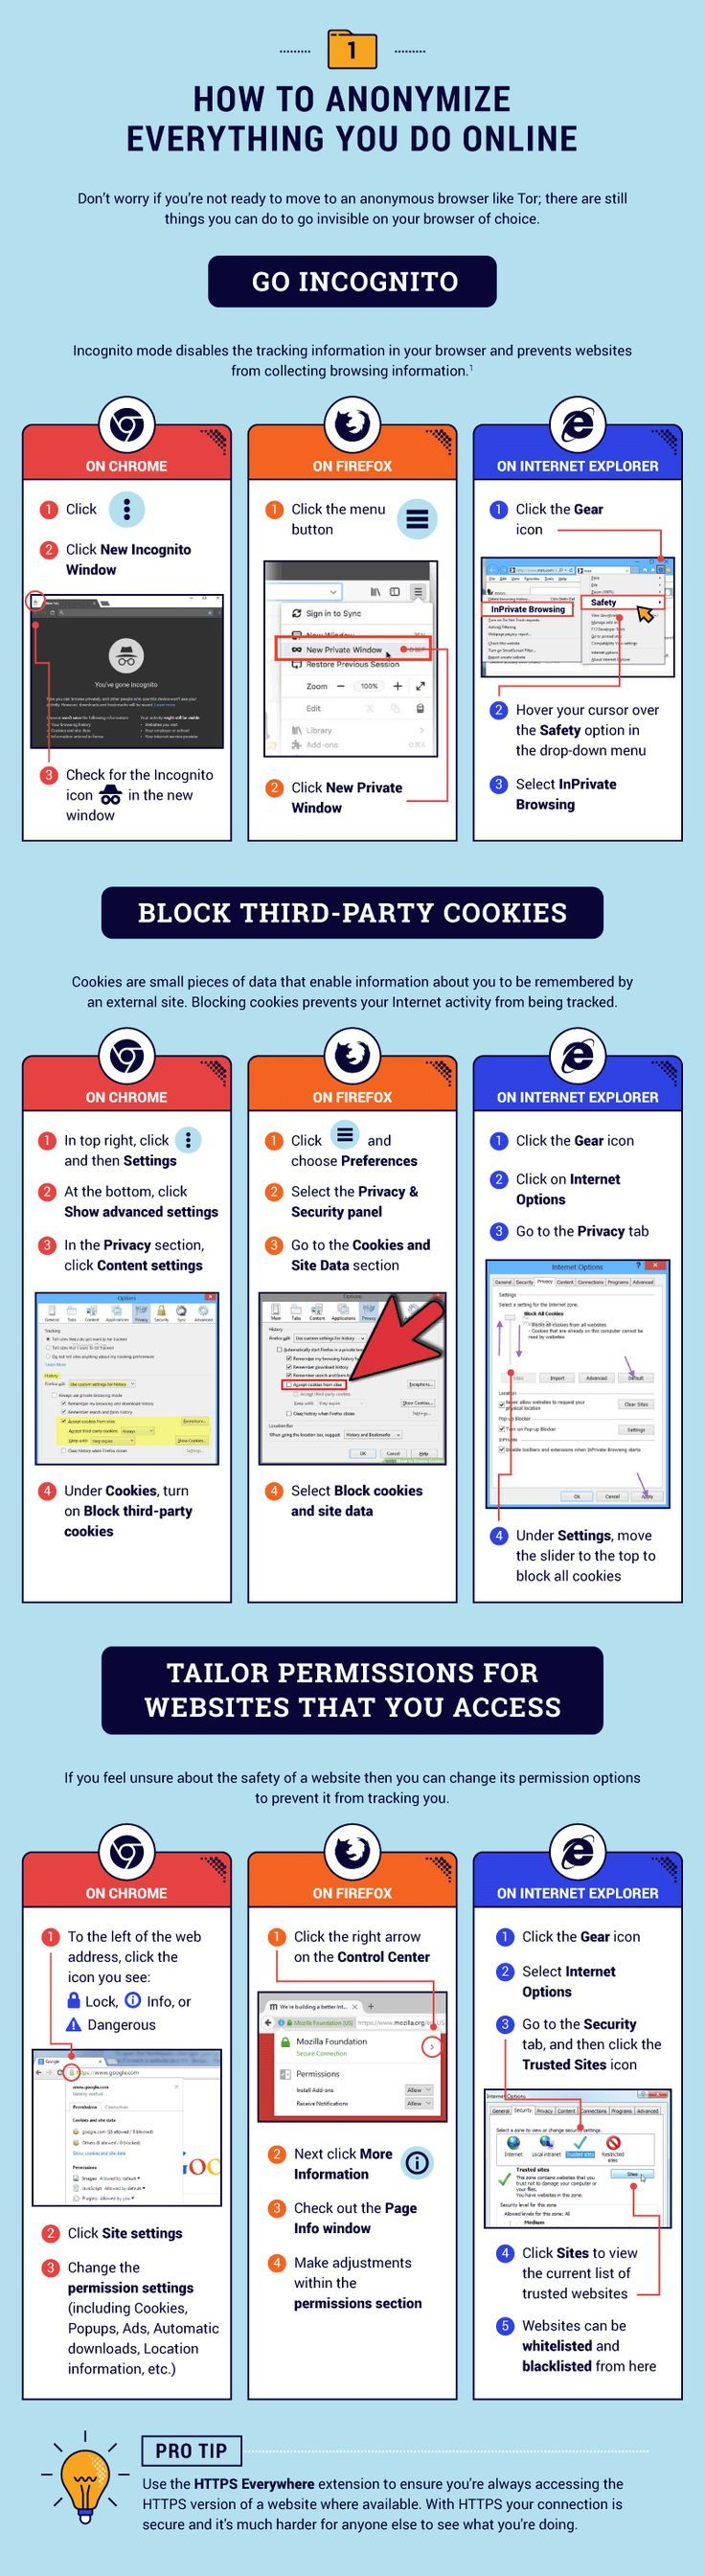 Marketing-Infographic-Internet-Privacy-Be-anonymous-online-Click-for-more-infographics-with-privacy Marketing Infographic : Internet Privacy: Be anonymous online! Click for more infographics with privacy ...